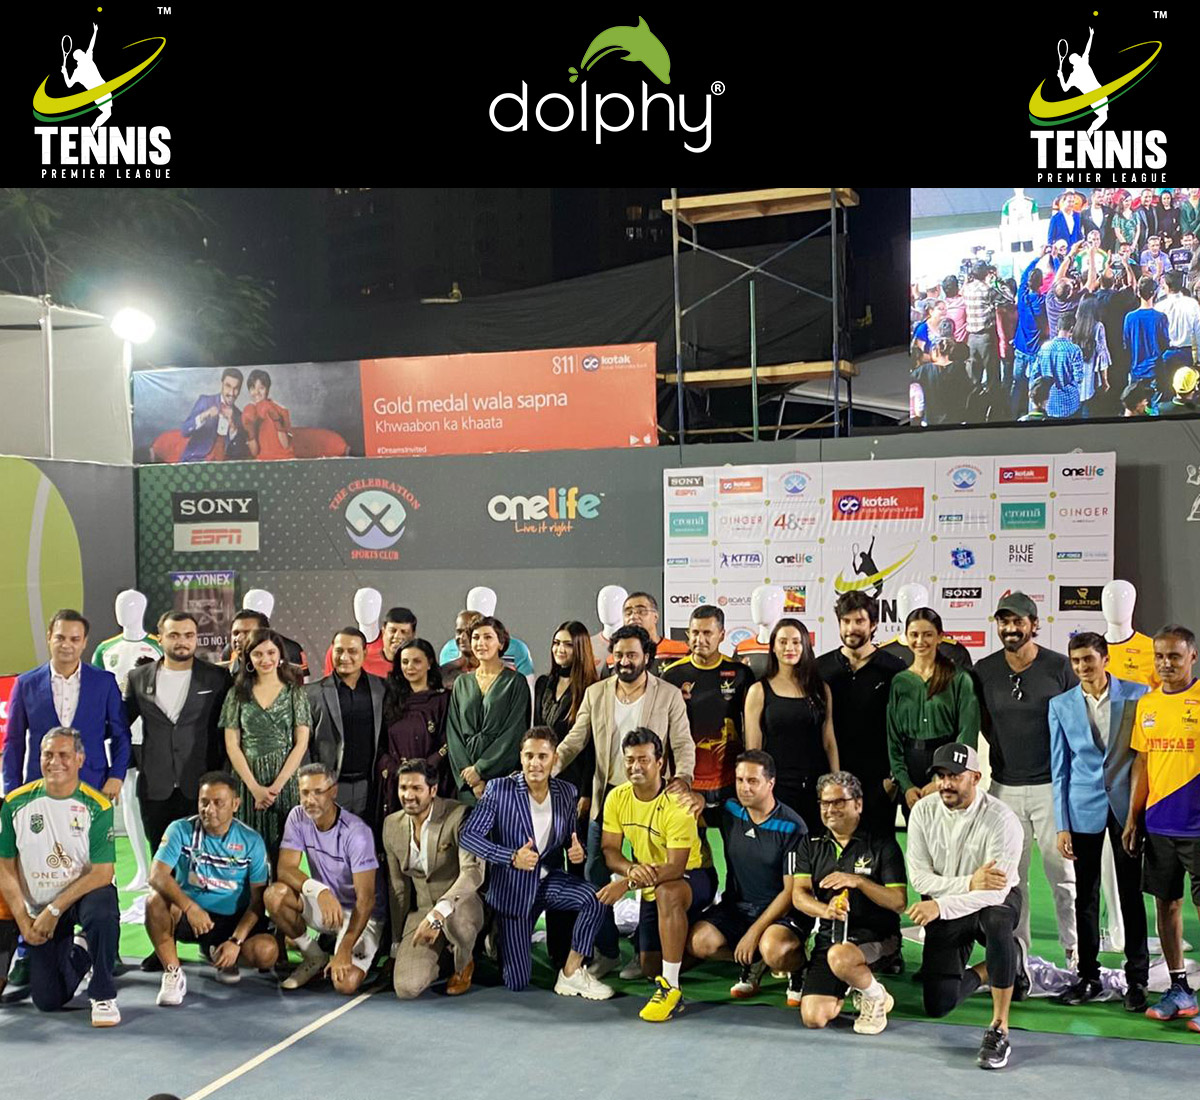 Tennis Premier League-2019 sponsored by dolphy